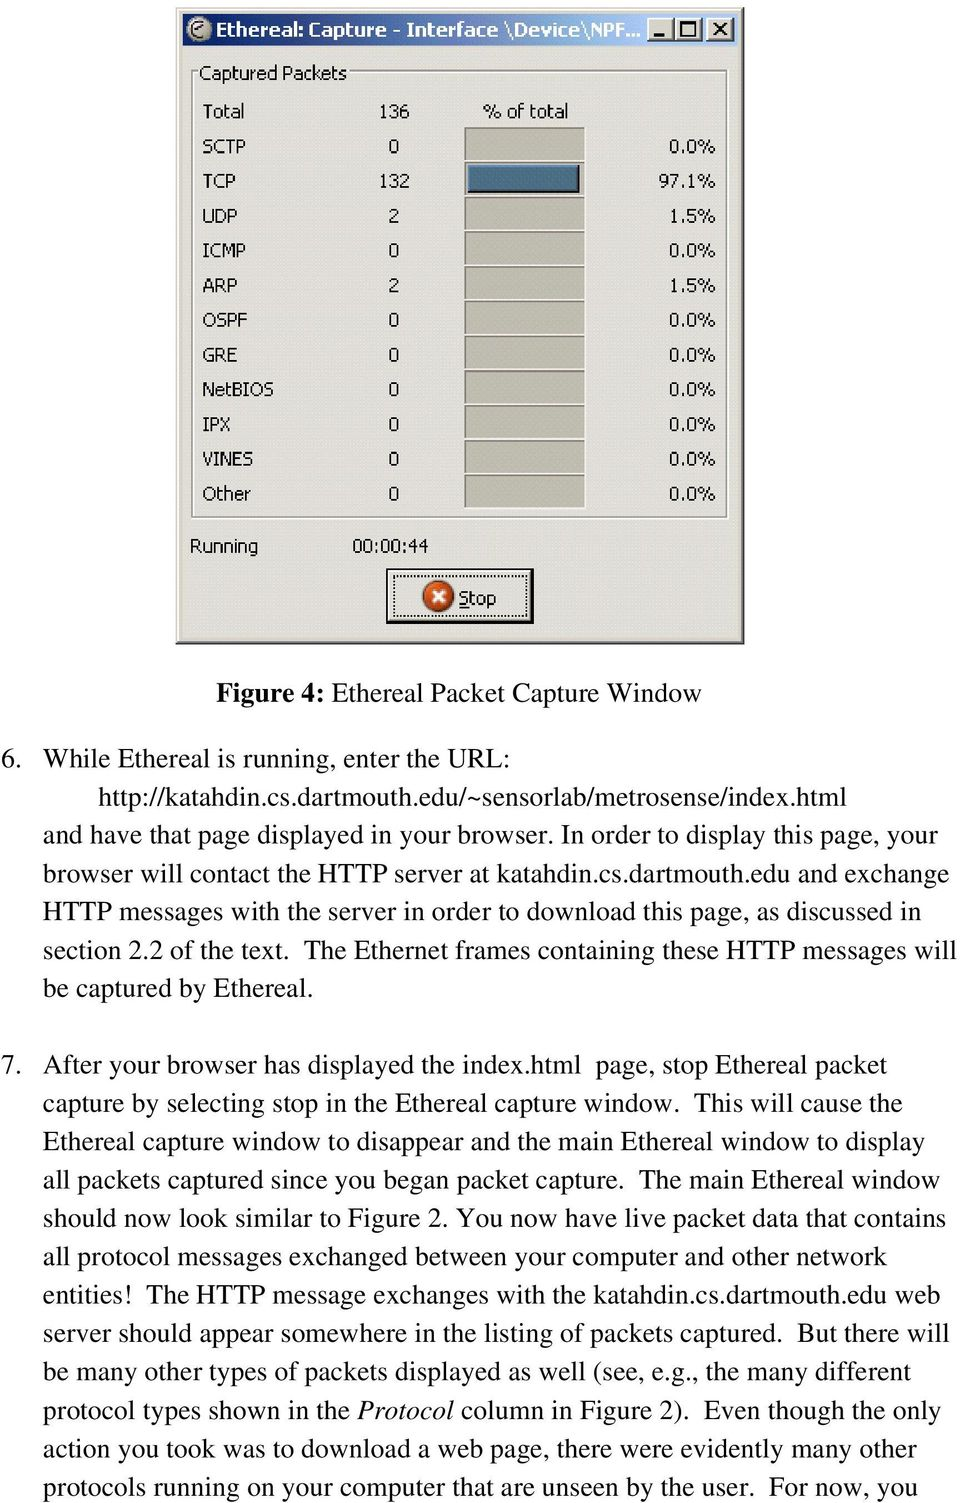 edu and exchange HTTP messages with the server in order to download this page, as discussed in section 2.2 of the text. The Ethernet frames containing these HTTP messages will be captured by Ethereal.